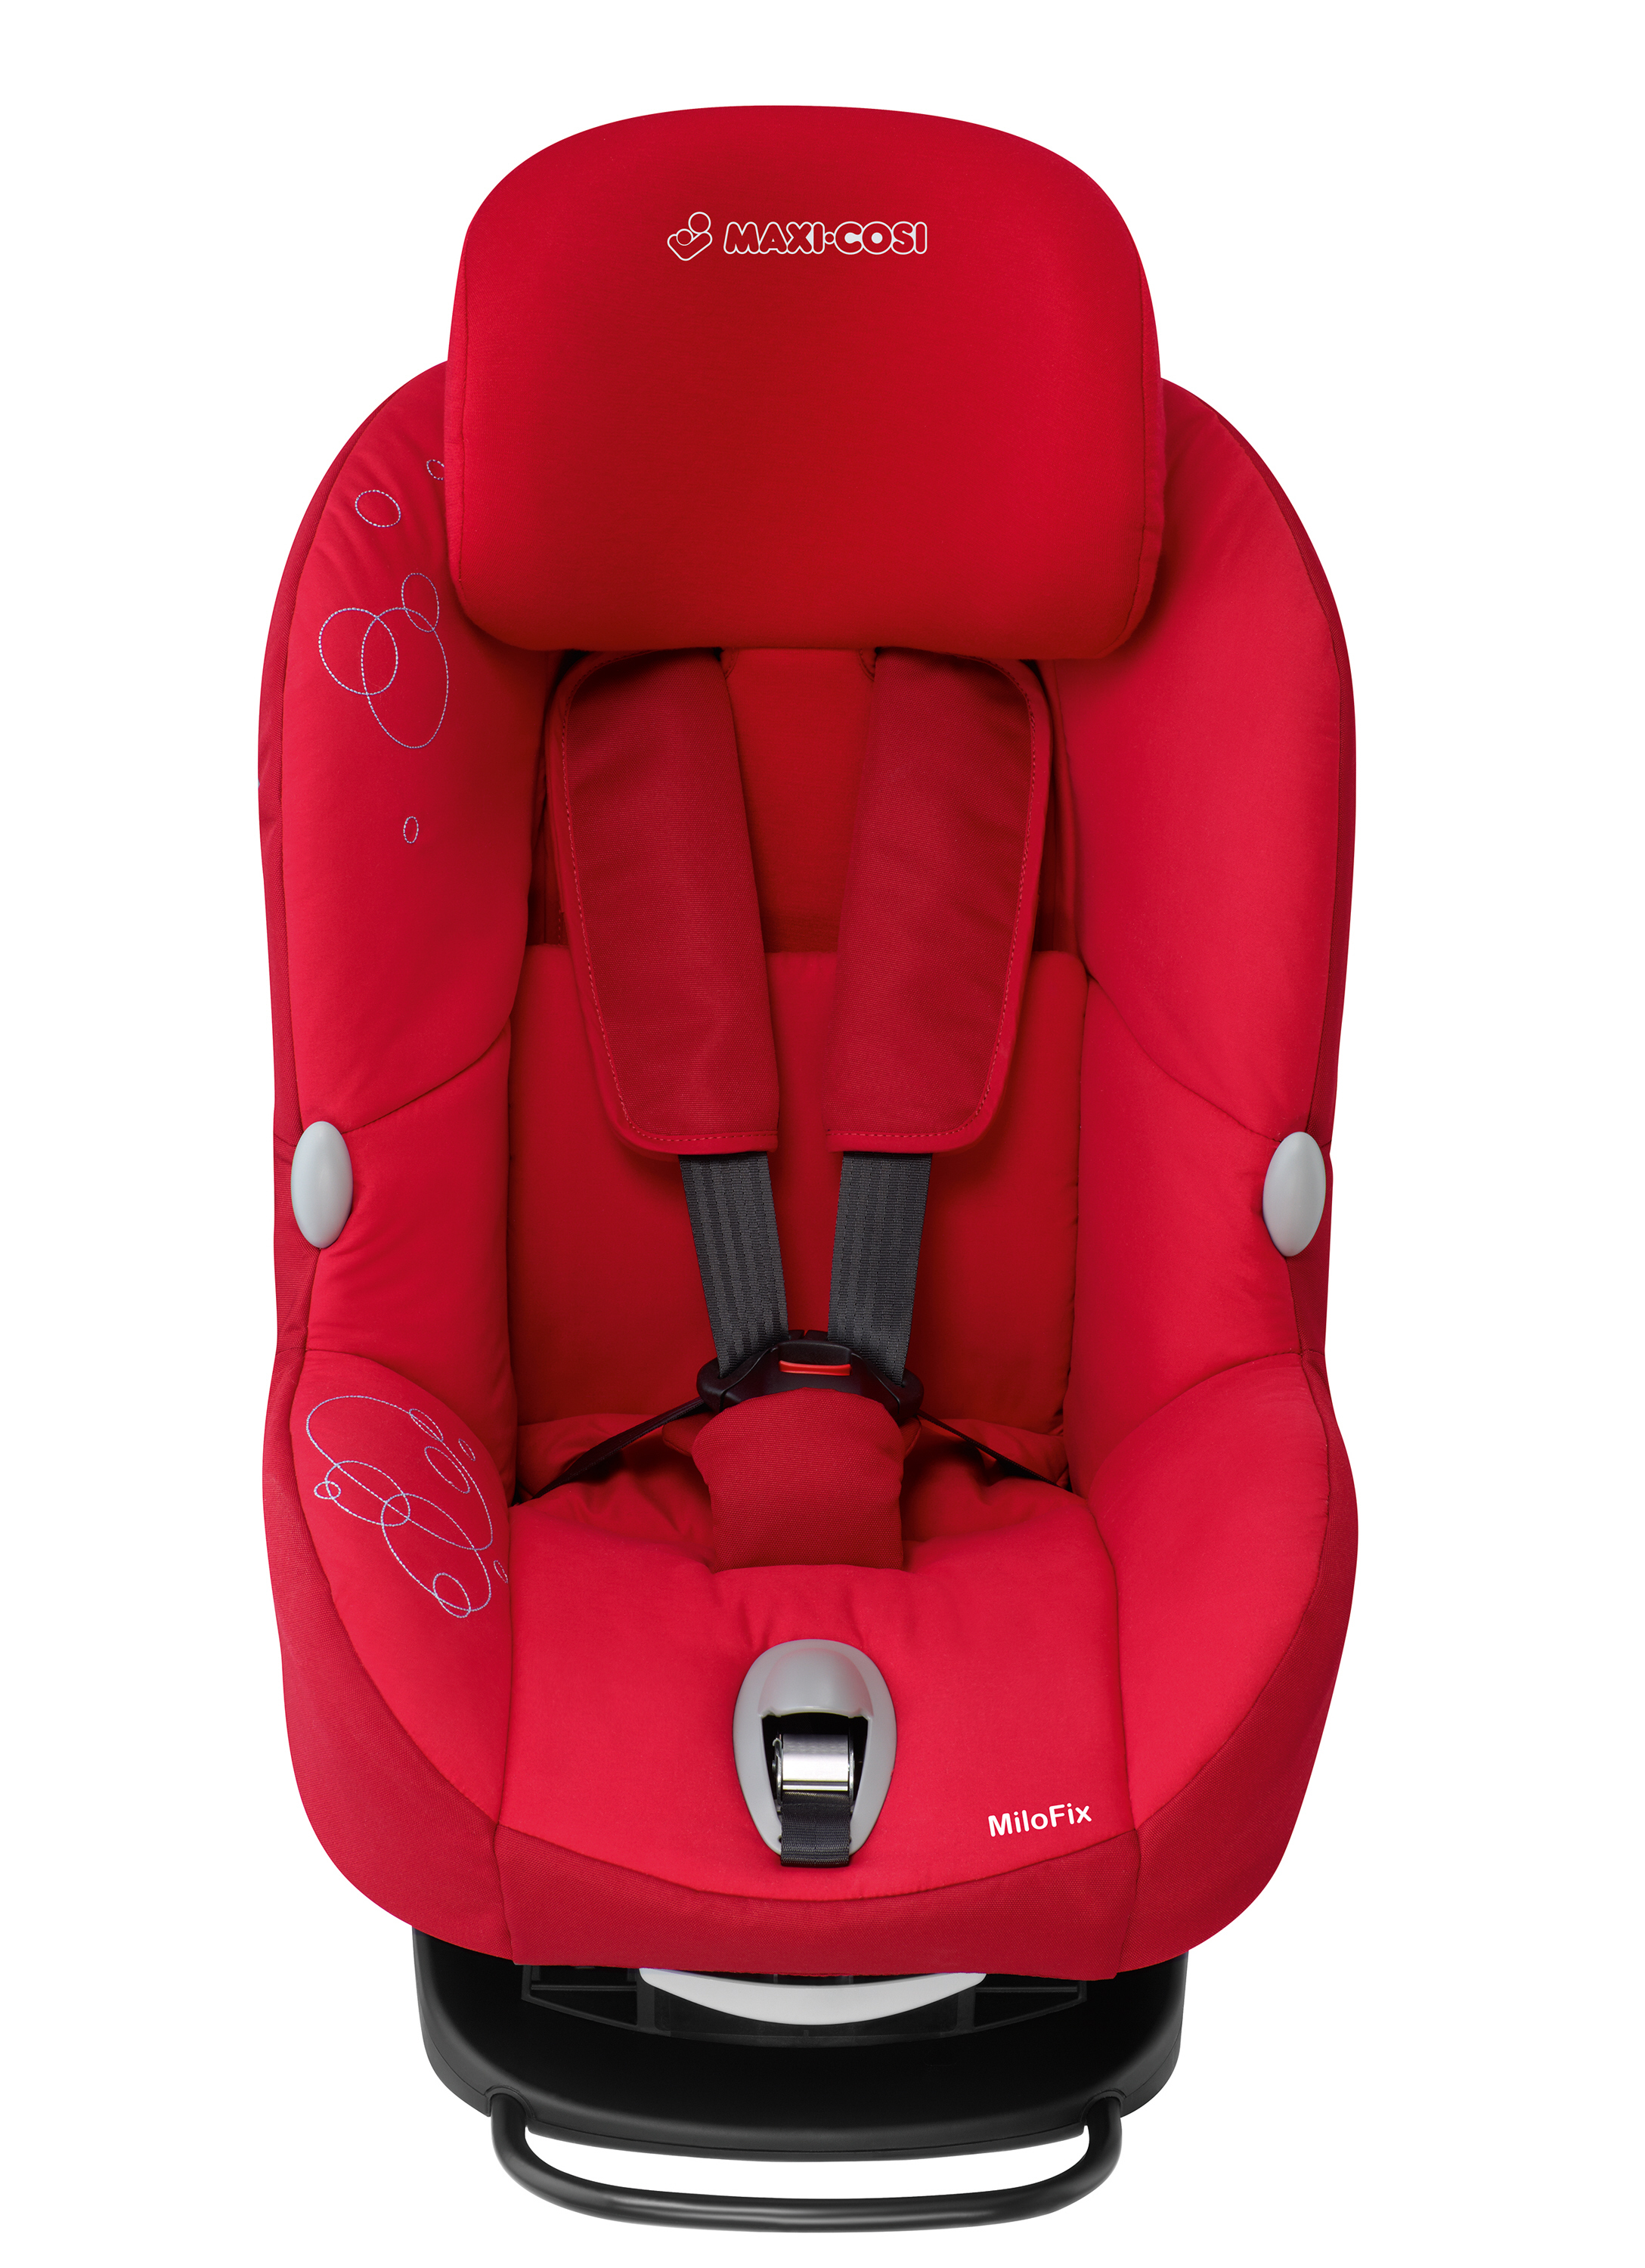 maxi cosi child car seat milofix 2013 intense red buy at kidsroom car seats isofix child. Black Bedroom Furniture Sets. Home Design Ideas